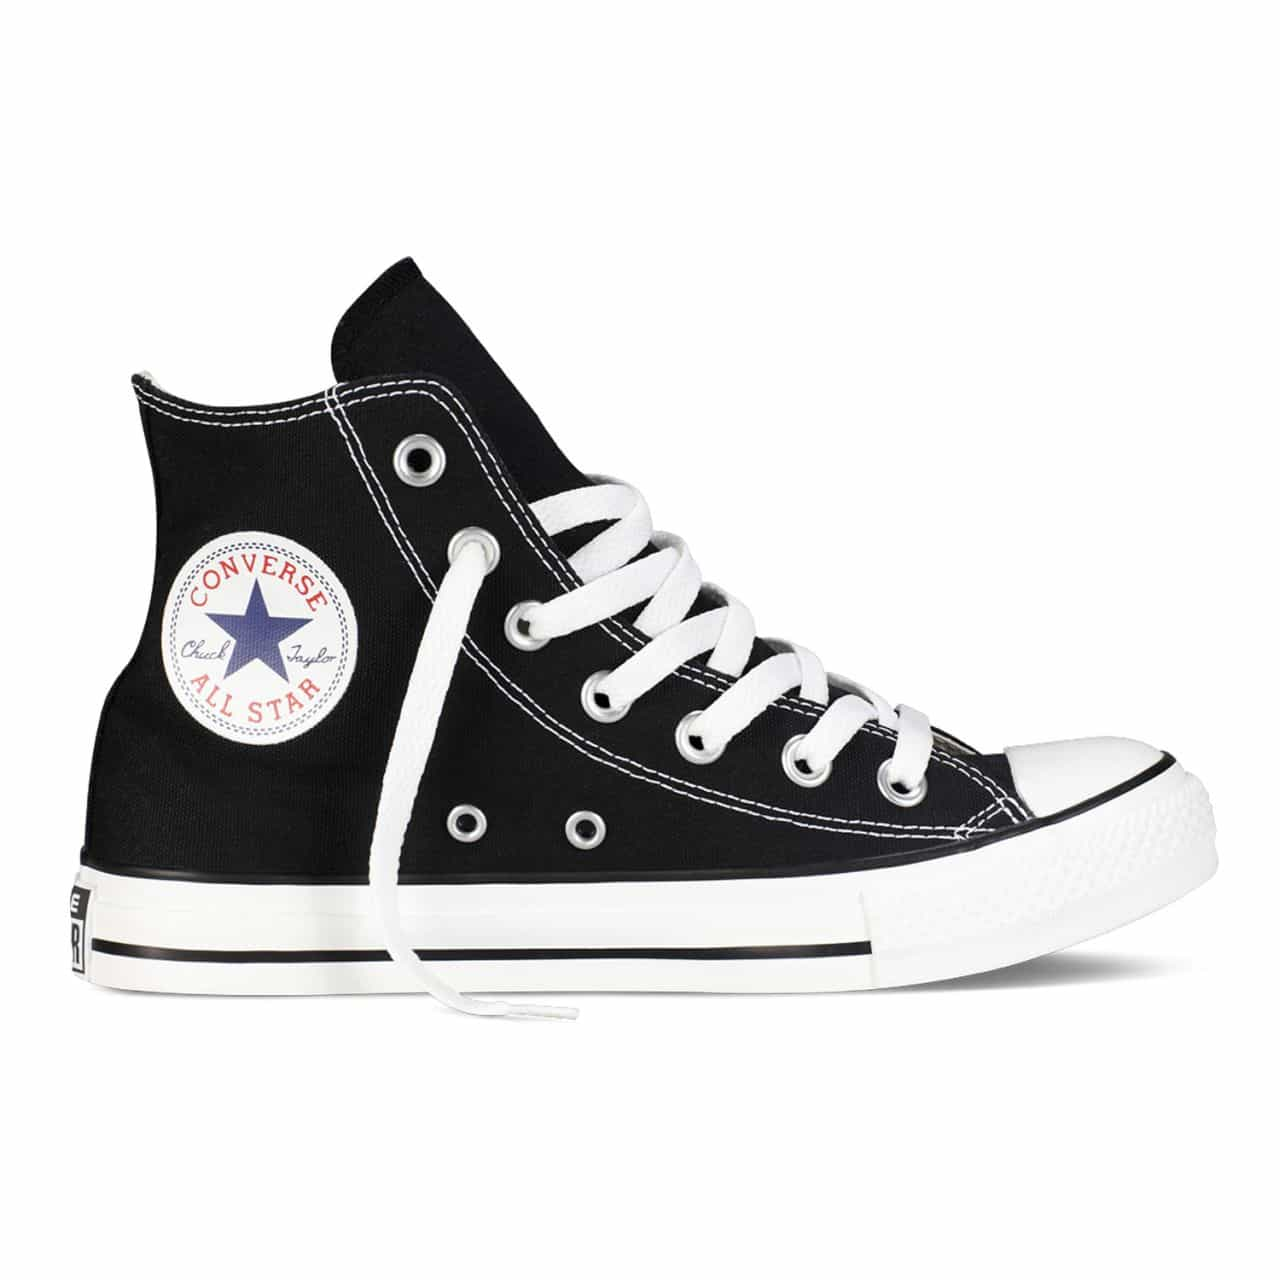 TENISI ORIGINALI CONVERSE ALL STAR HI - M9160C